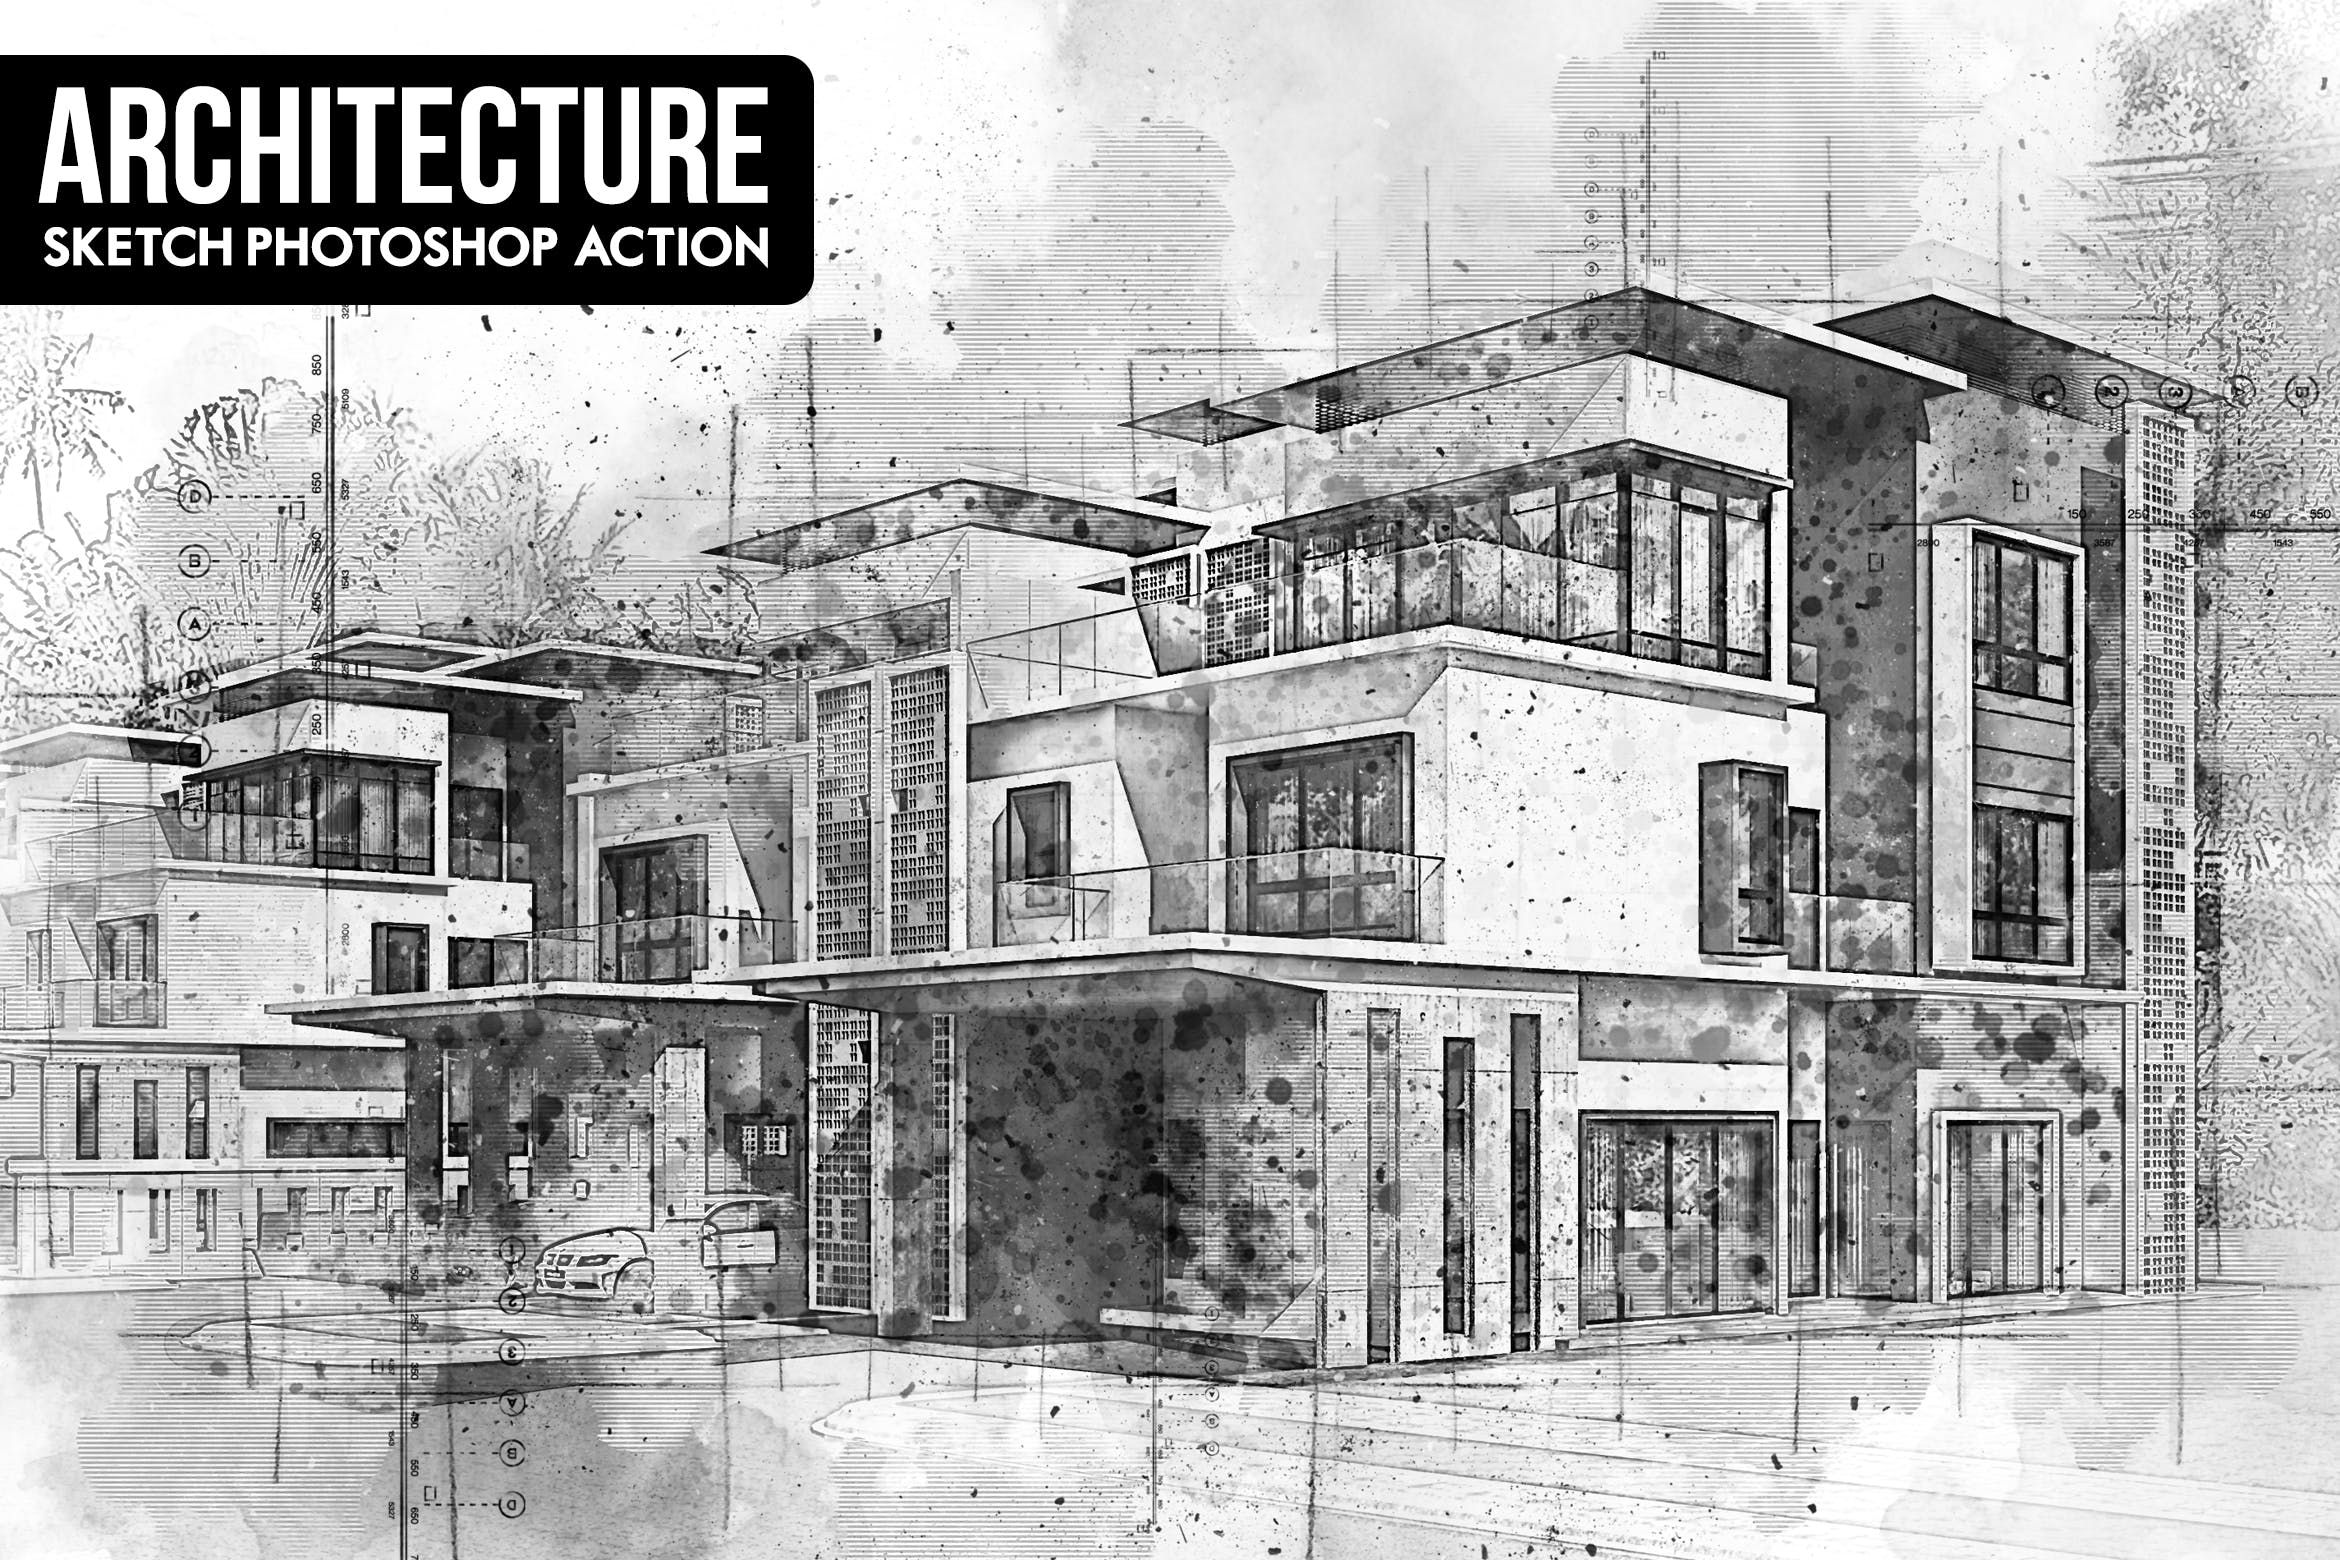 Architecture sketch photoshop action atchitecture artistic action drawing design exterior interior hand drawn template sketch